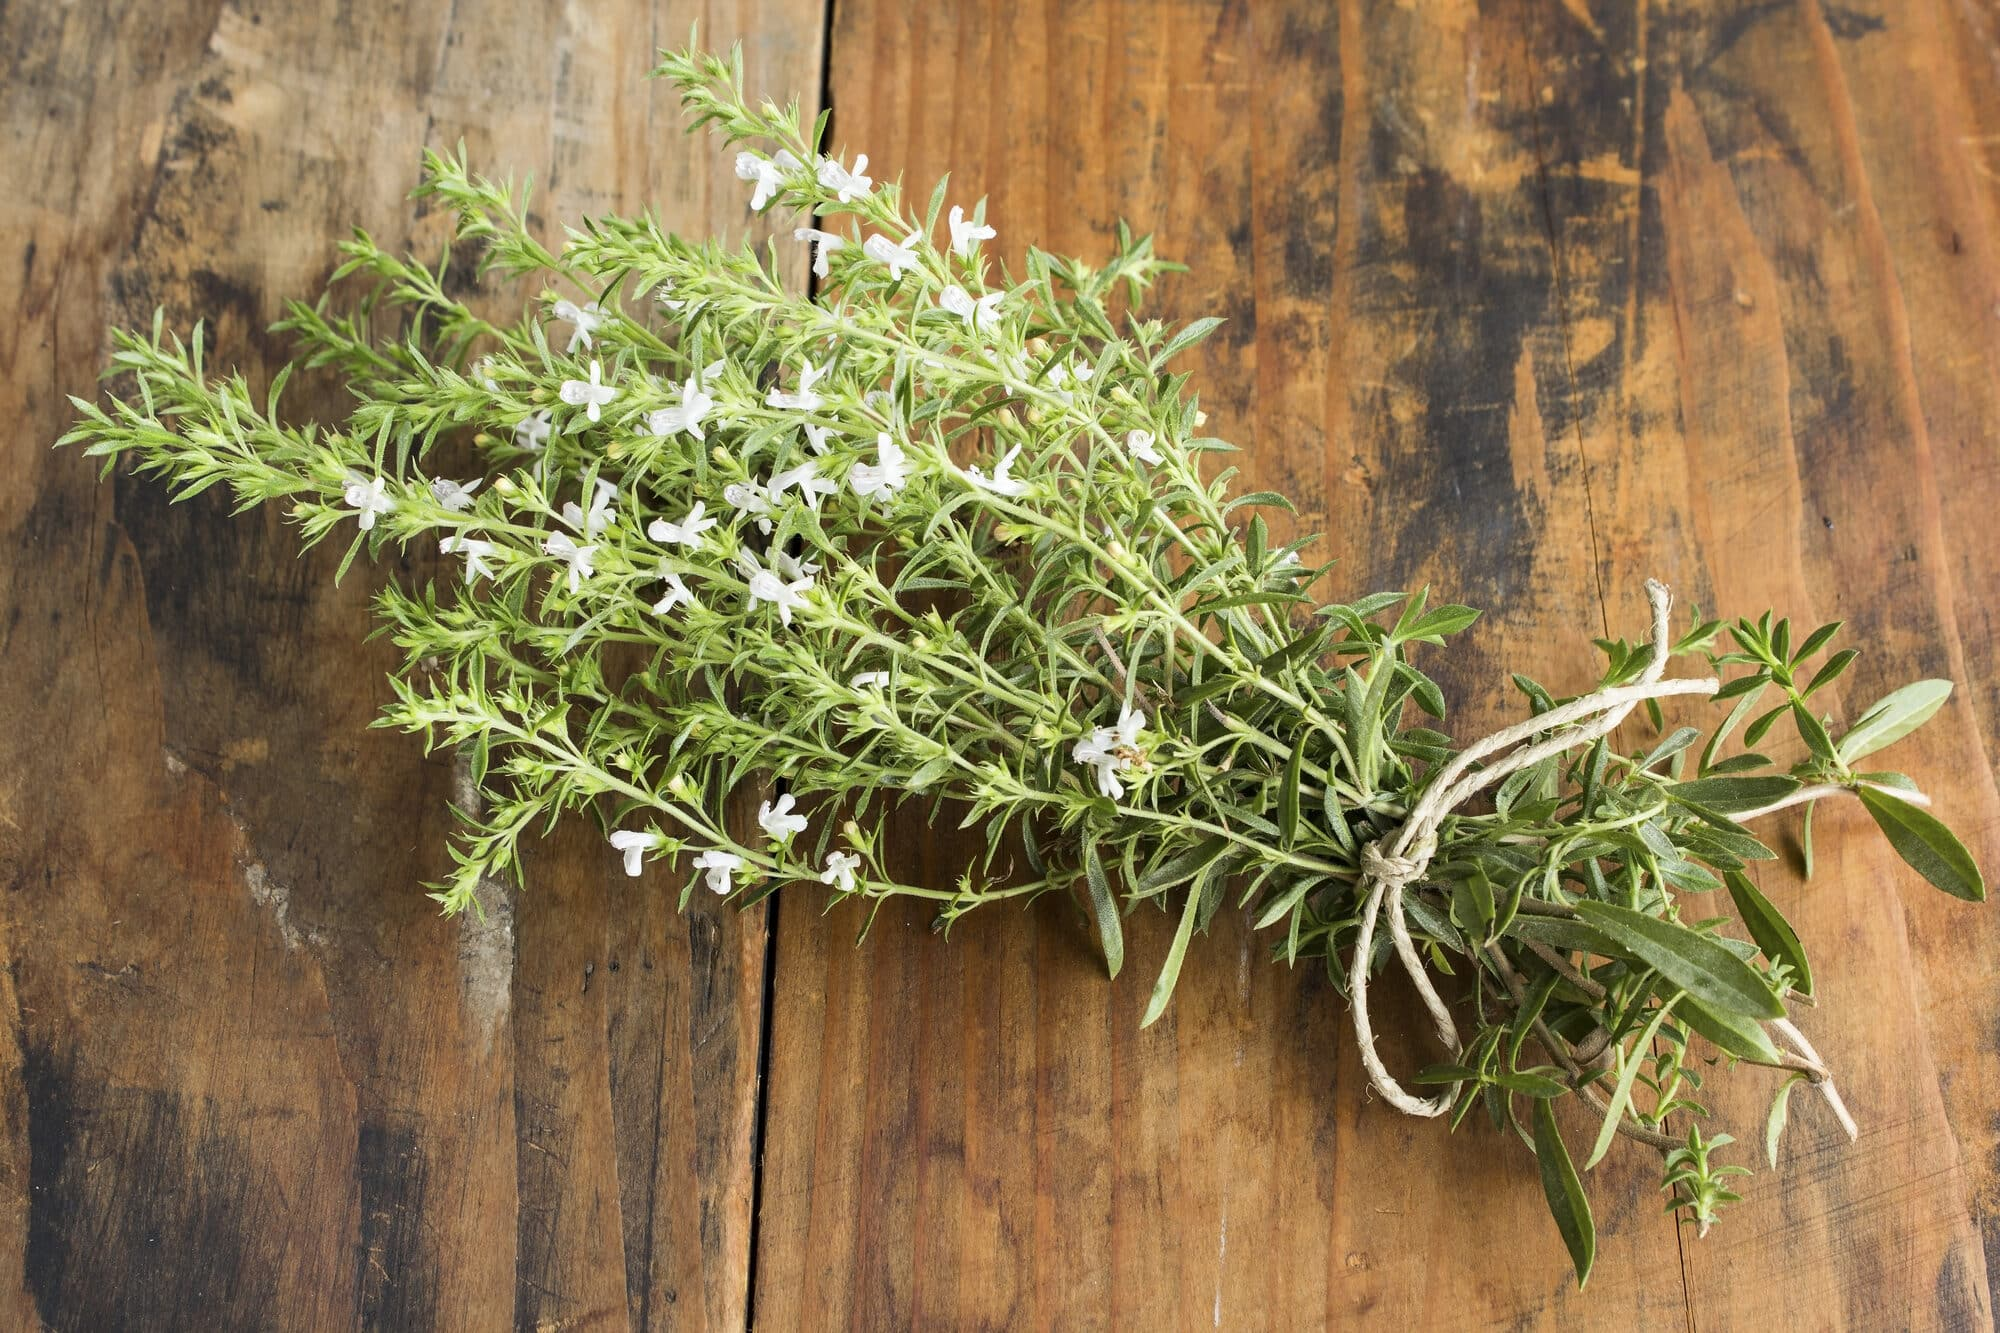 Cooking With Summer Savory: The Dos And Don'ts